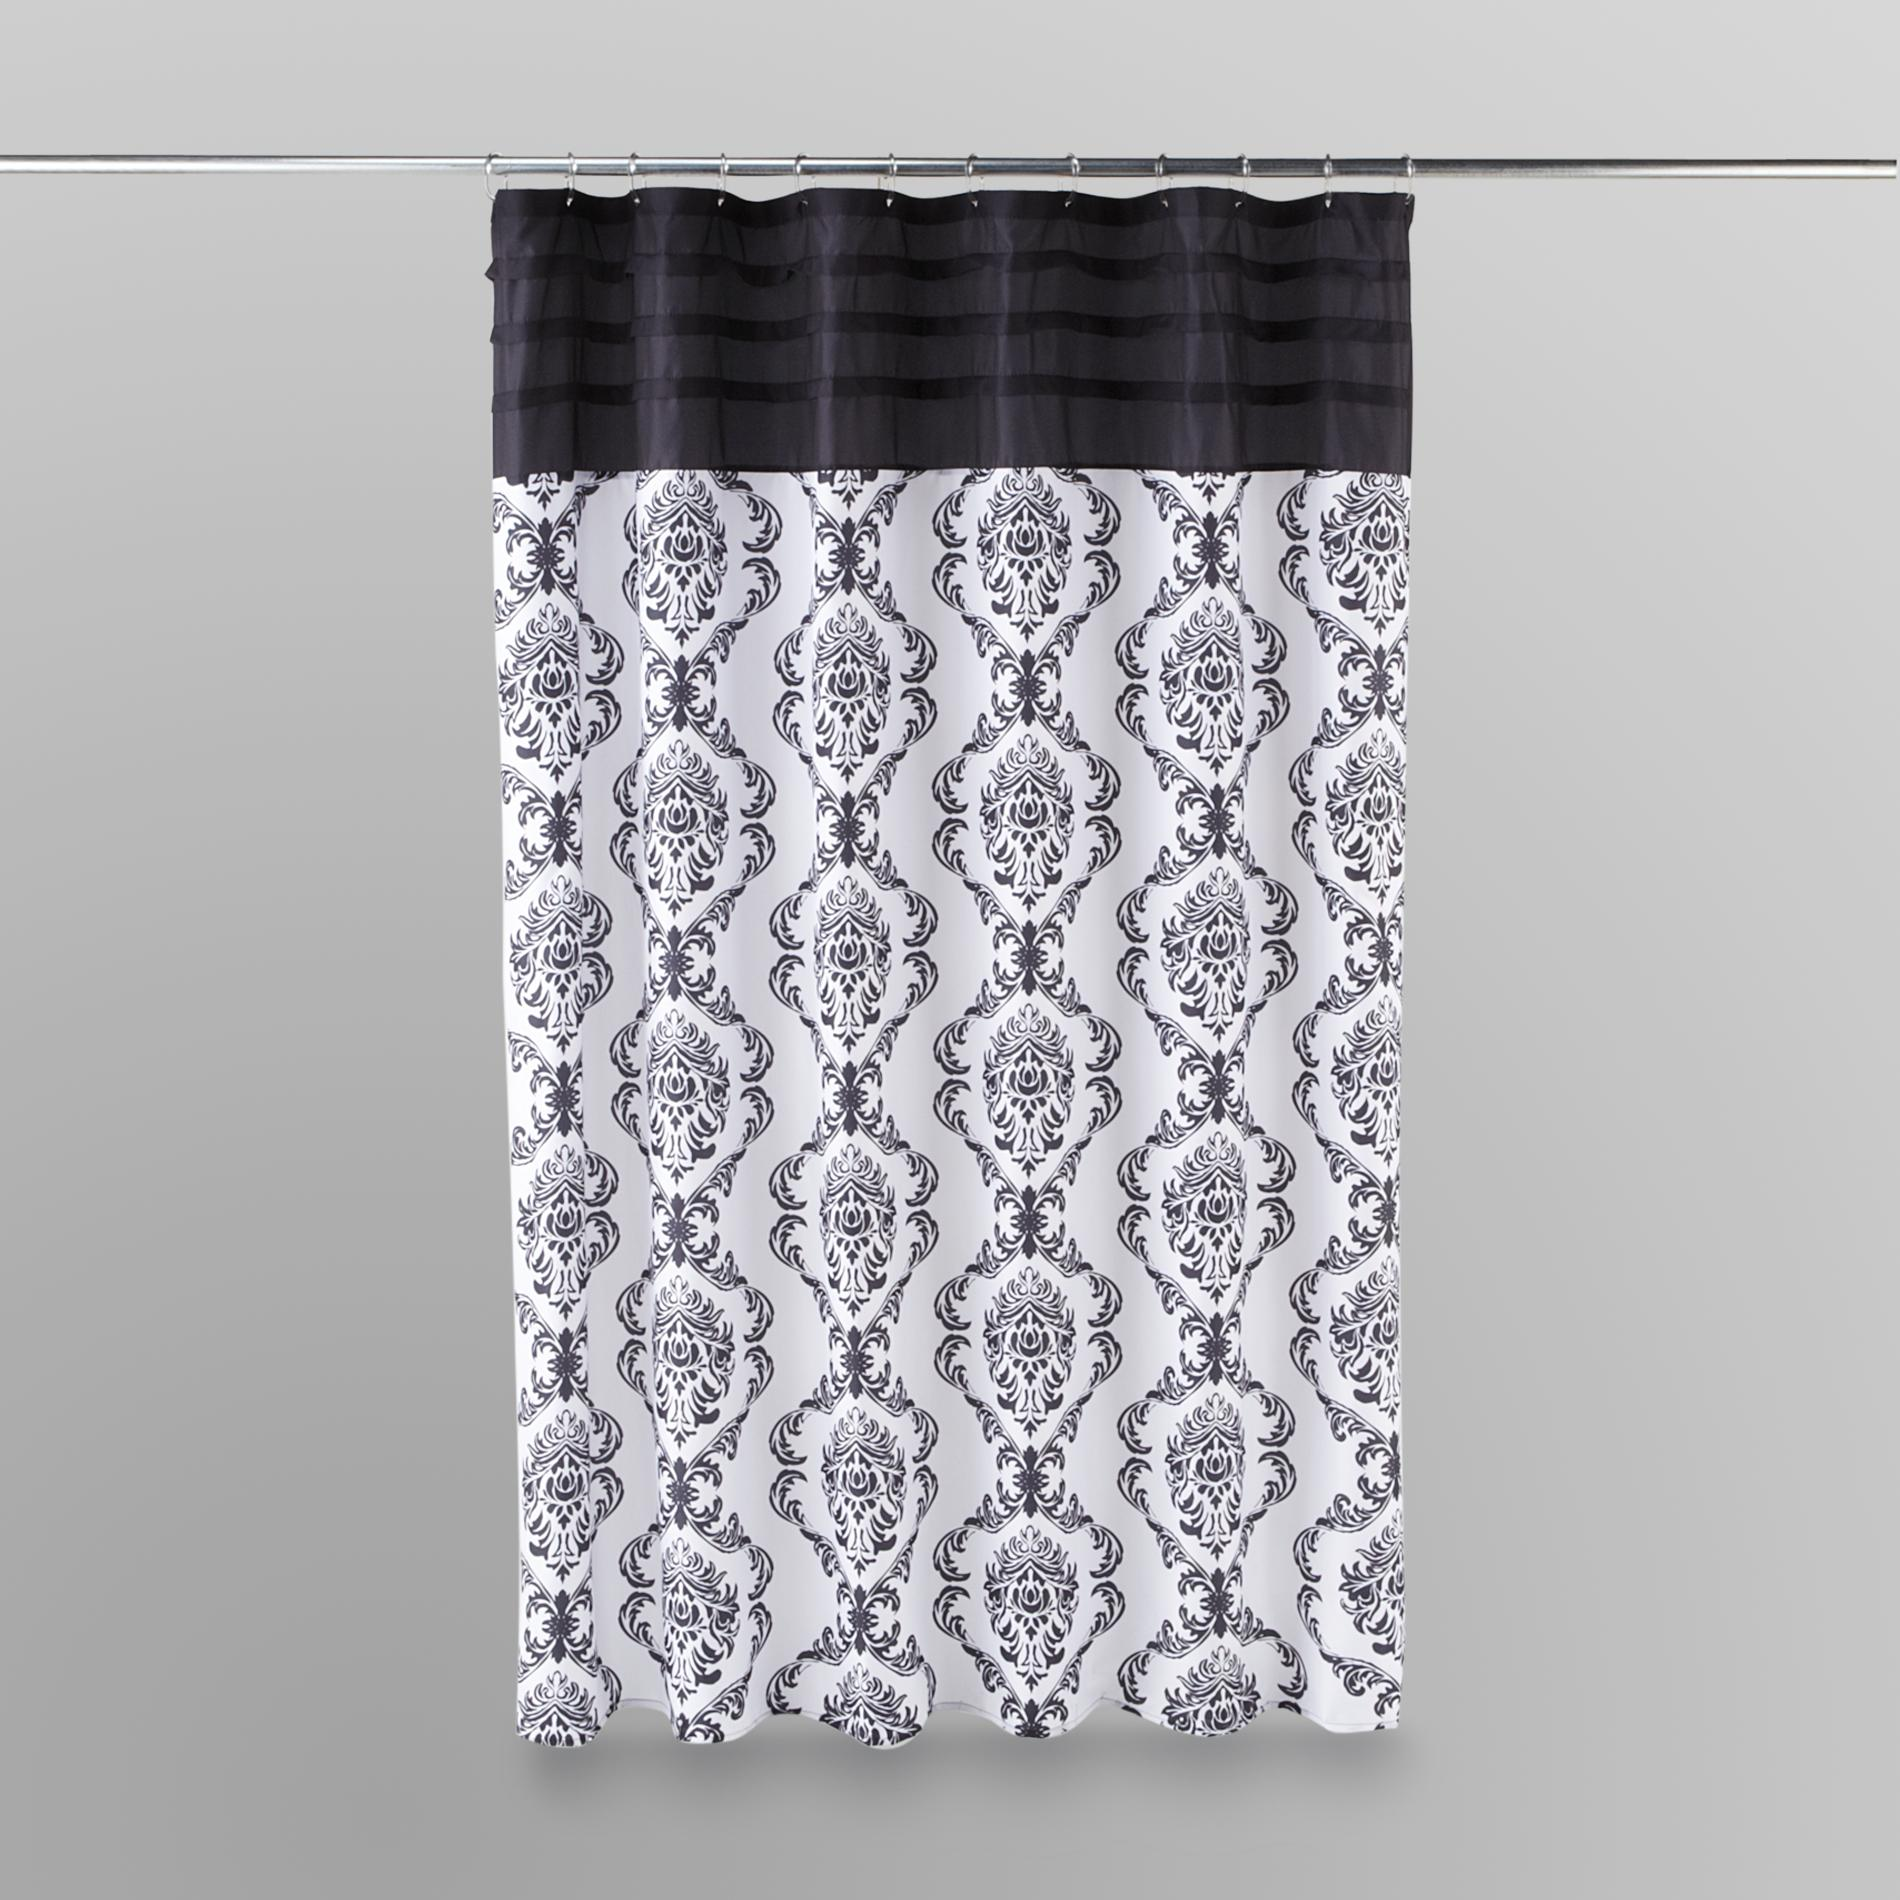 Essential Home  Shower Curtain - Damask